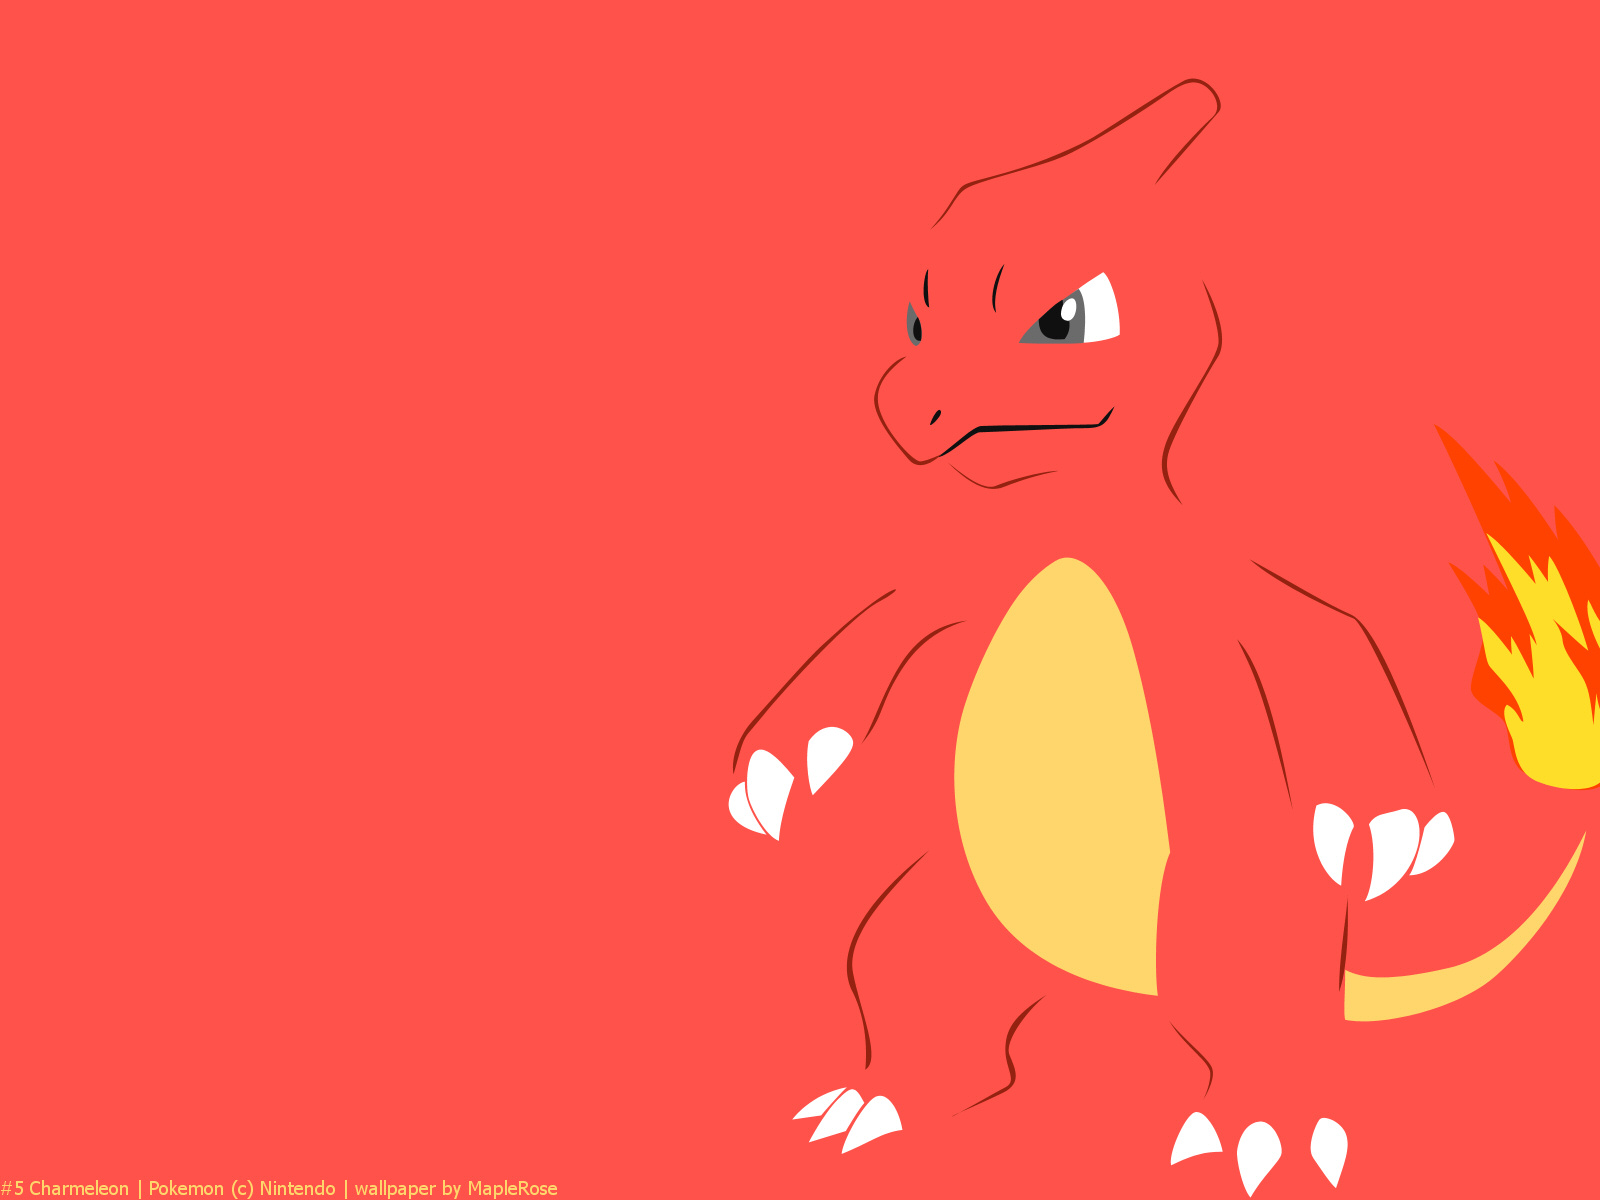 Charmeleon the flame pok 233 mon it has razor sharp claws and its tail